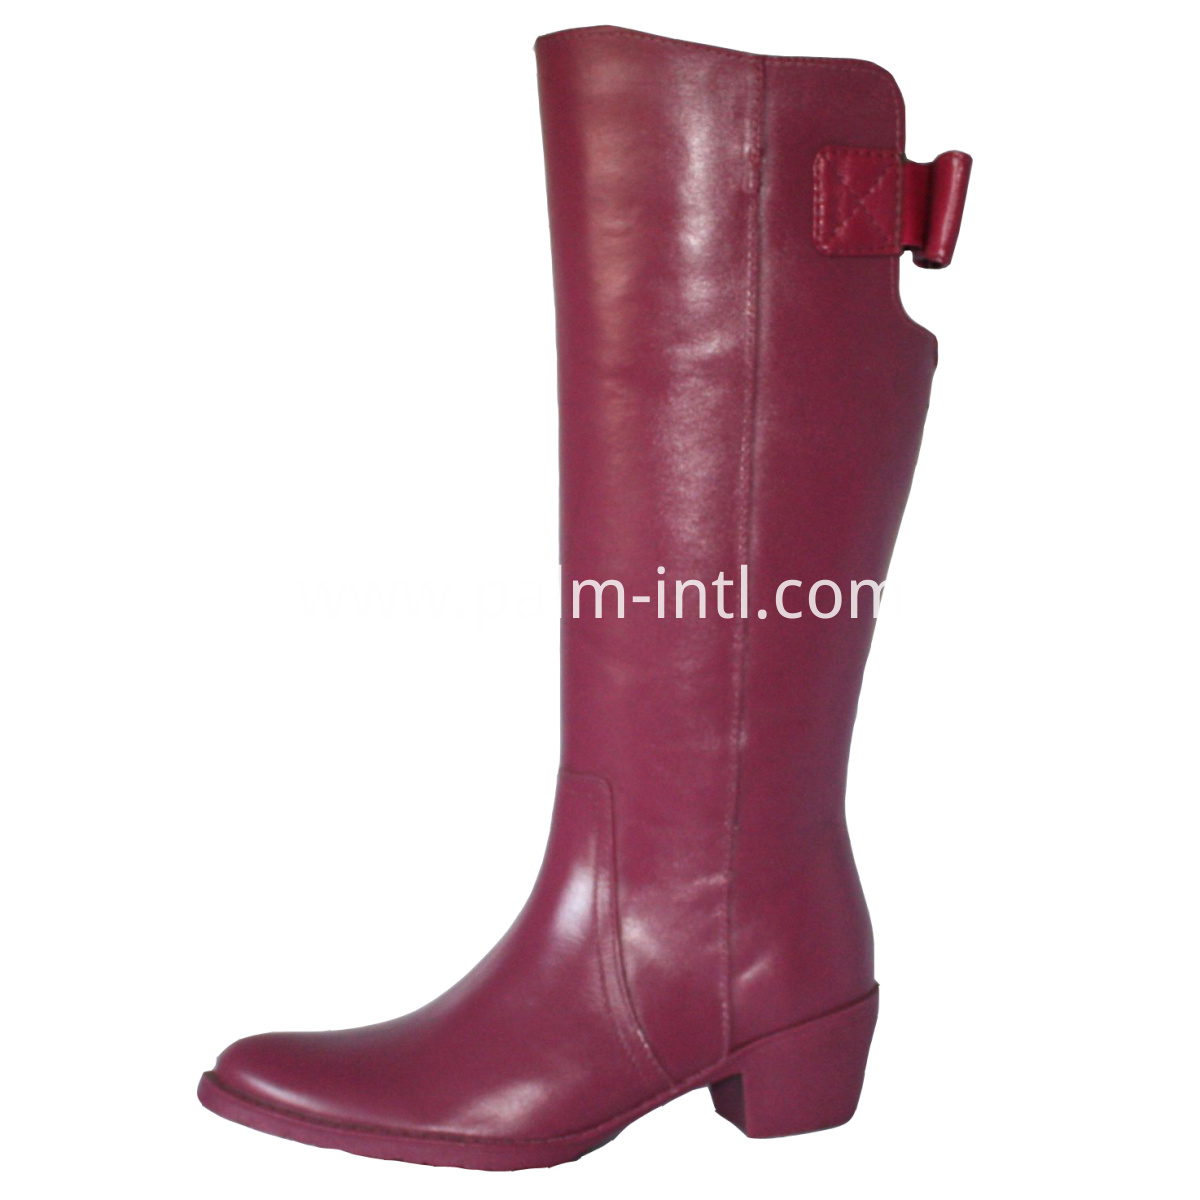 Leather-like Slush-Mouded Boots